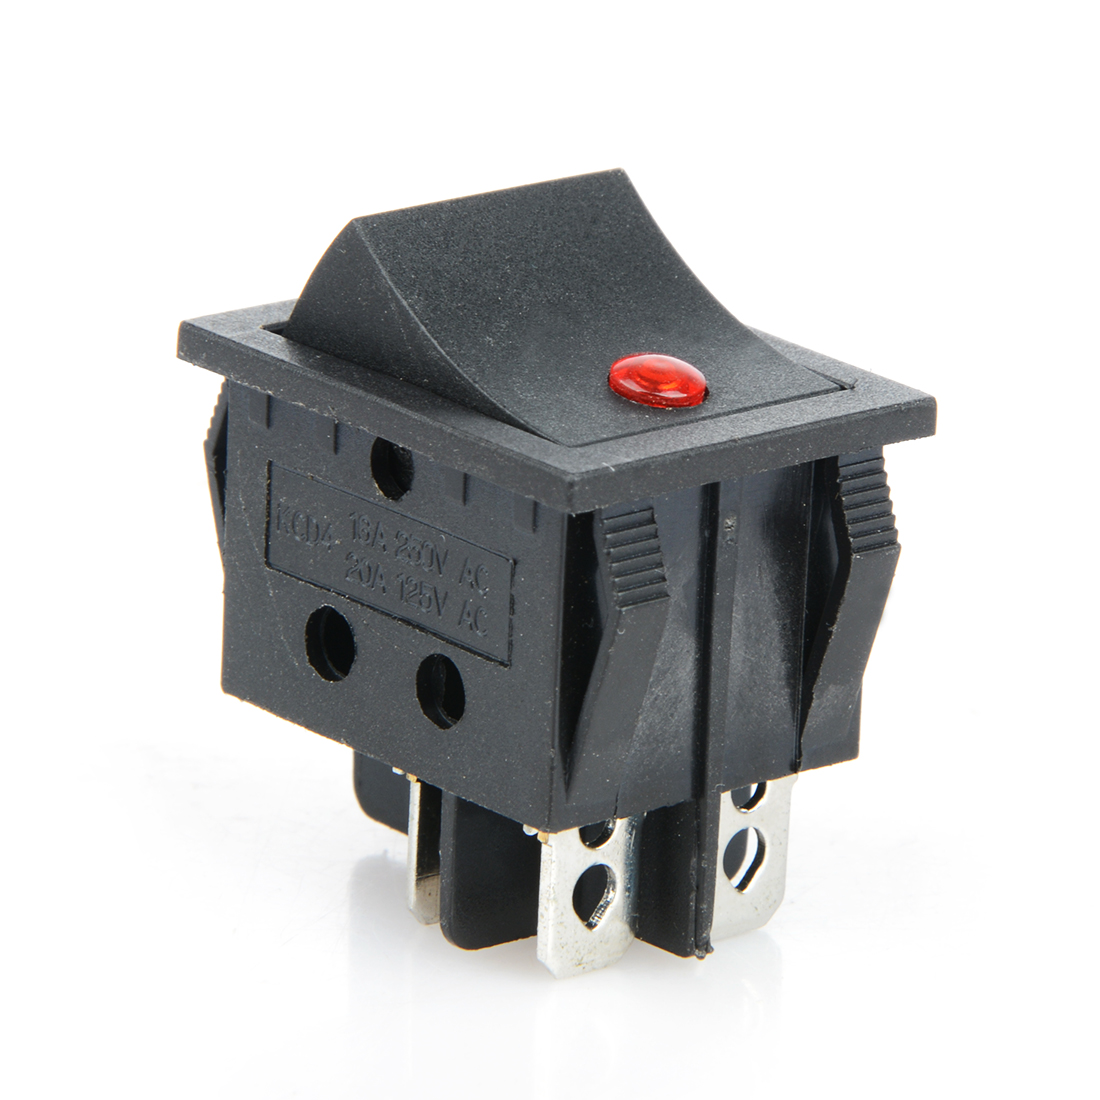 2pcs Rocker Switch KCD4 Four Leg Cat Eye Light Boat Type Pump Treadmill Repair Switch 12V 20A